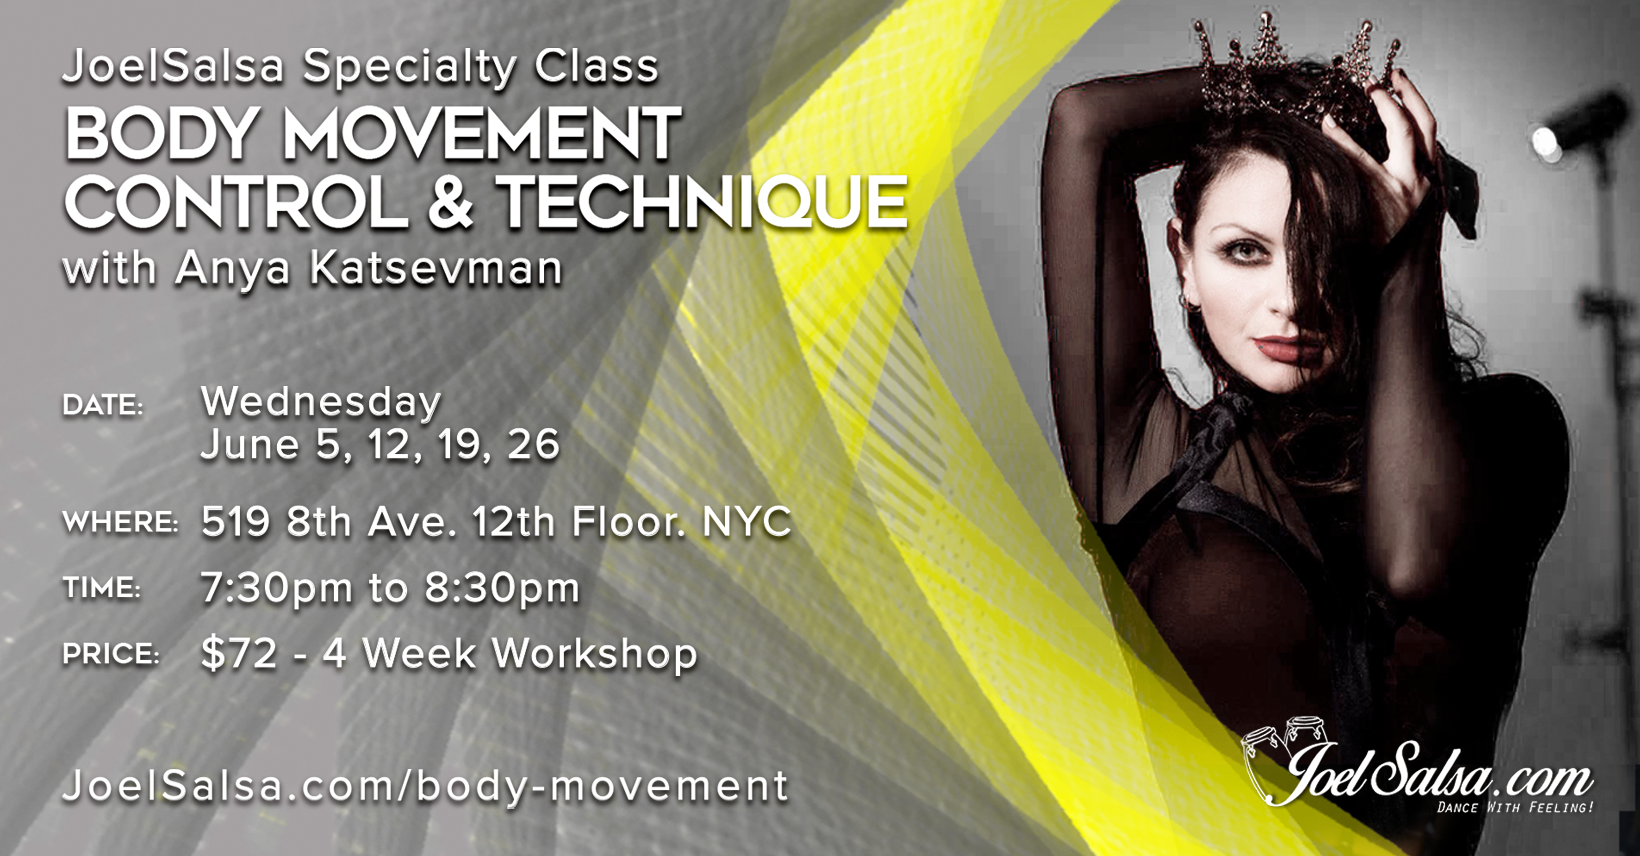 Body movement and control  JoelSalsa June specialty classes by Anya katsevman